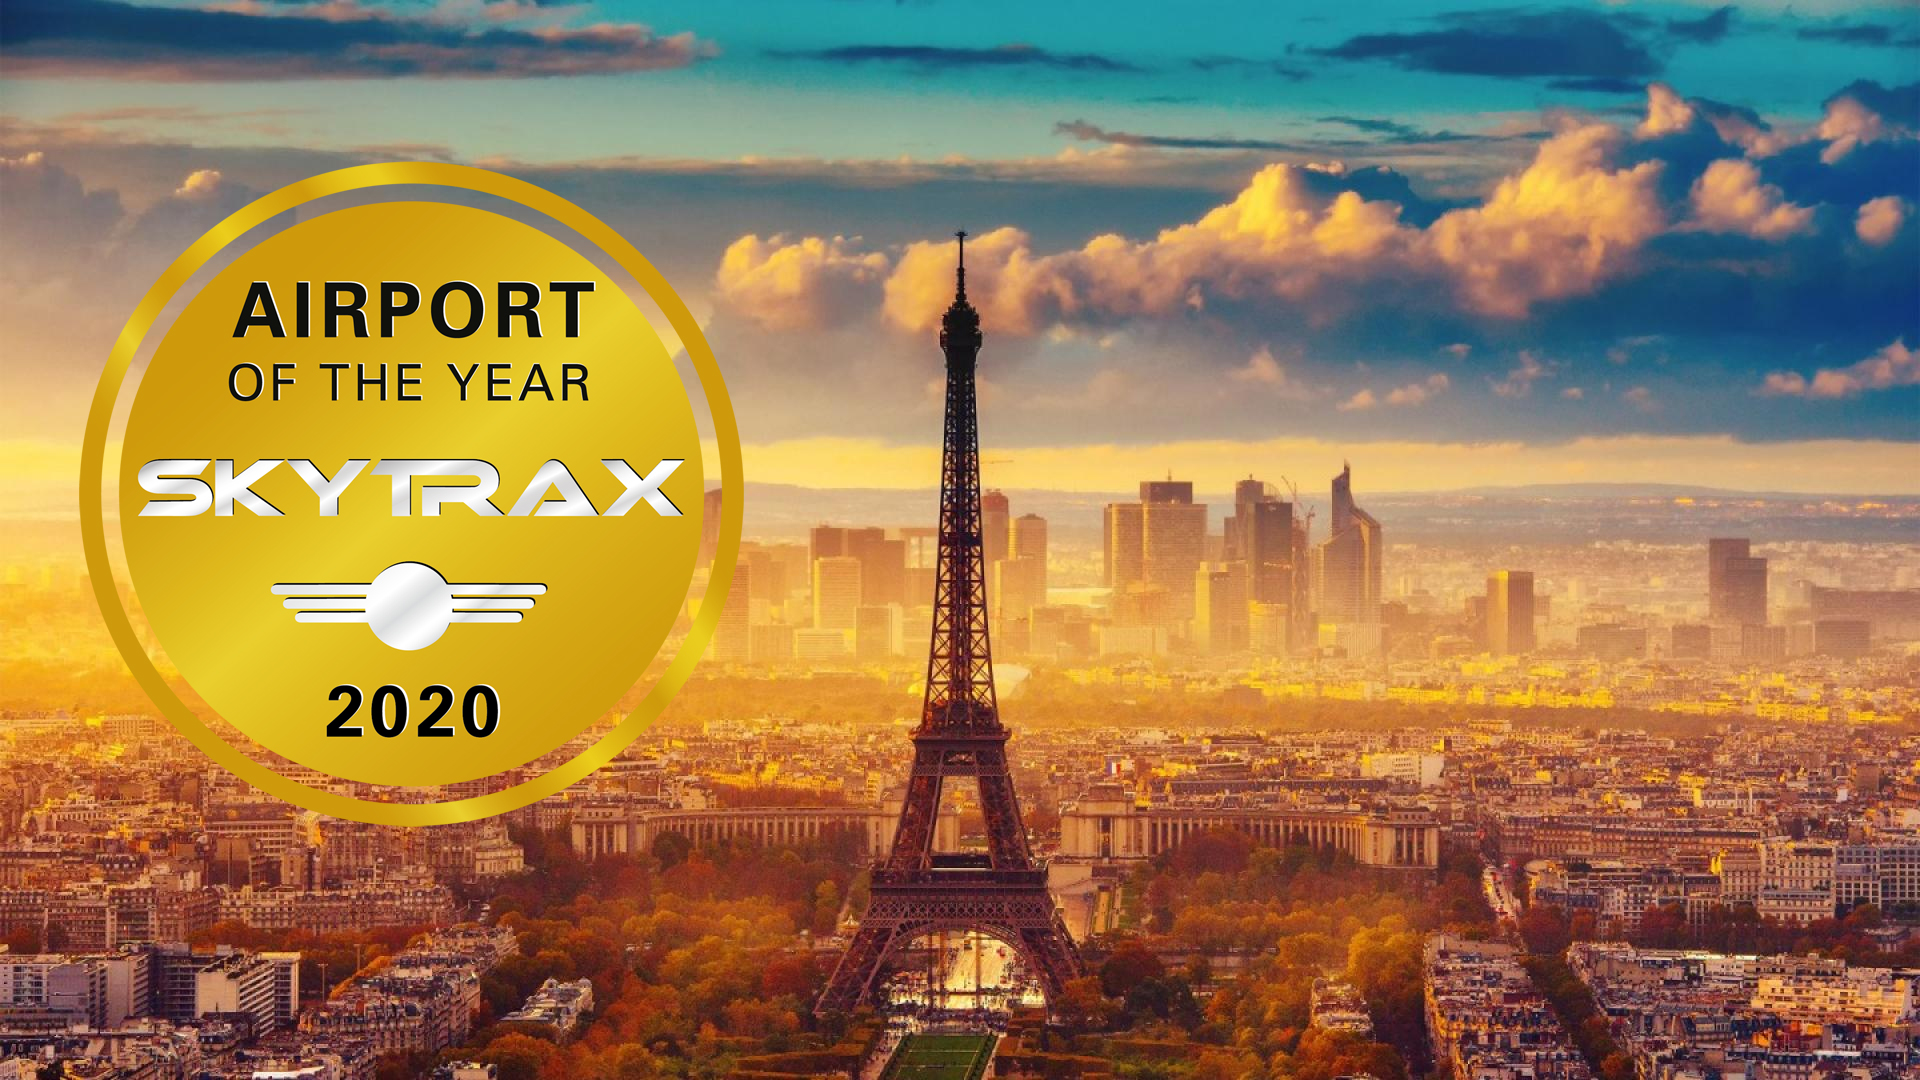 2020 World Airport Awards event cancelled - SKYTRAX